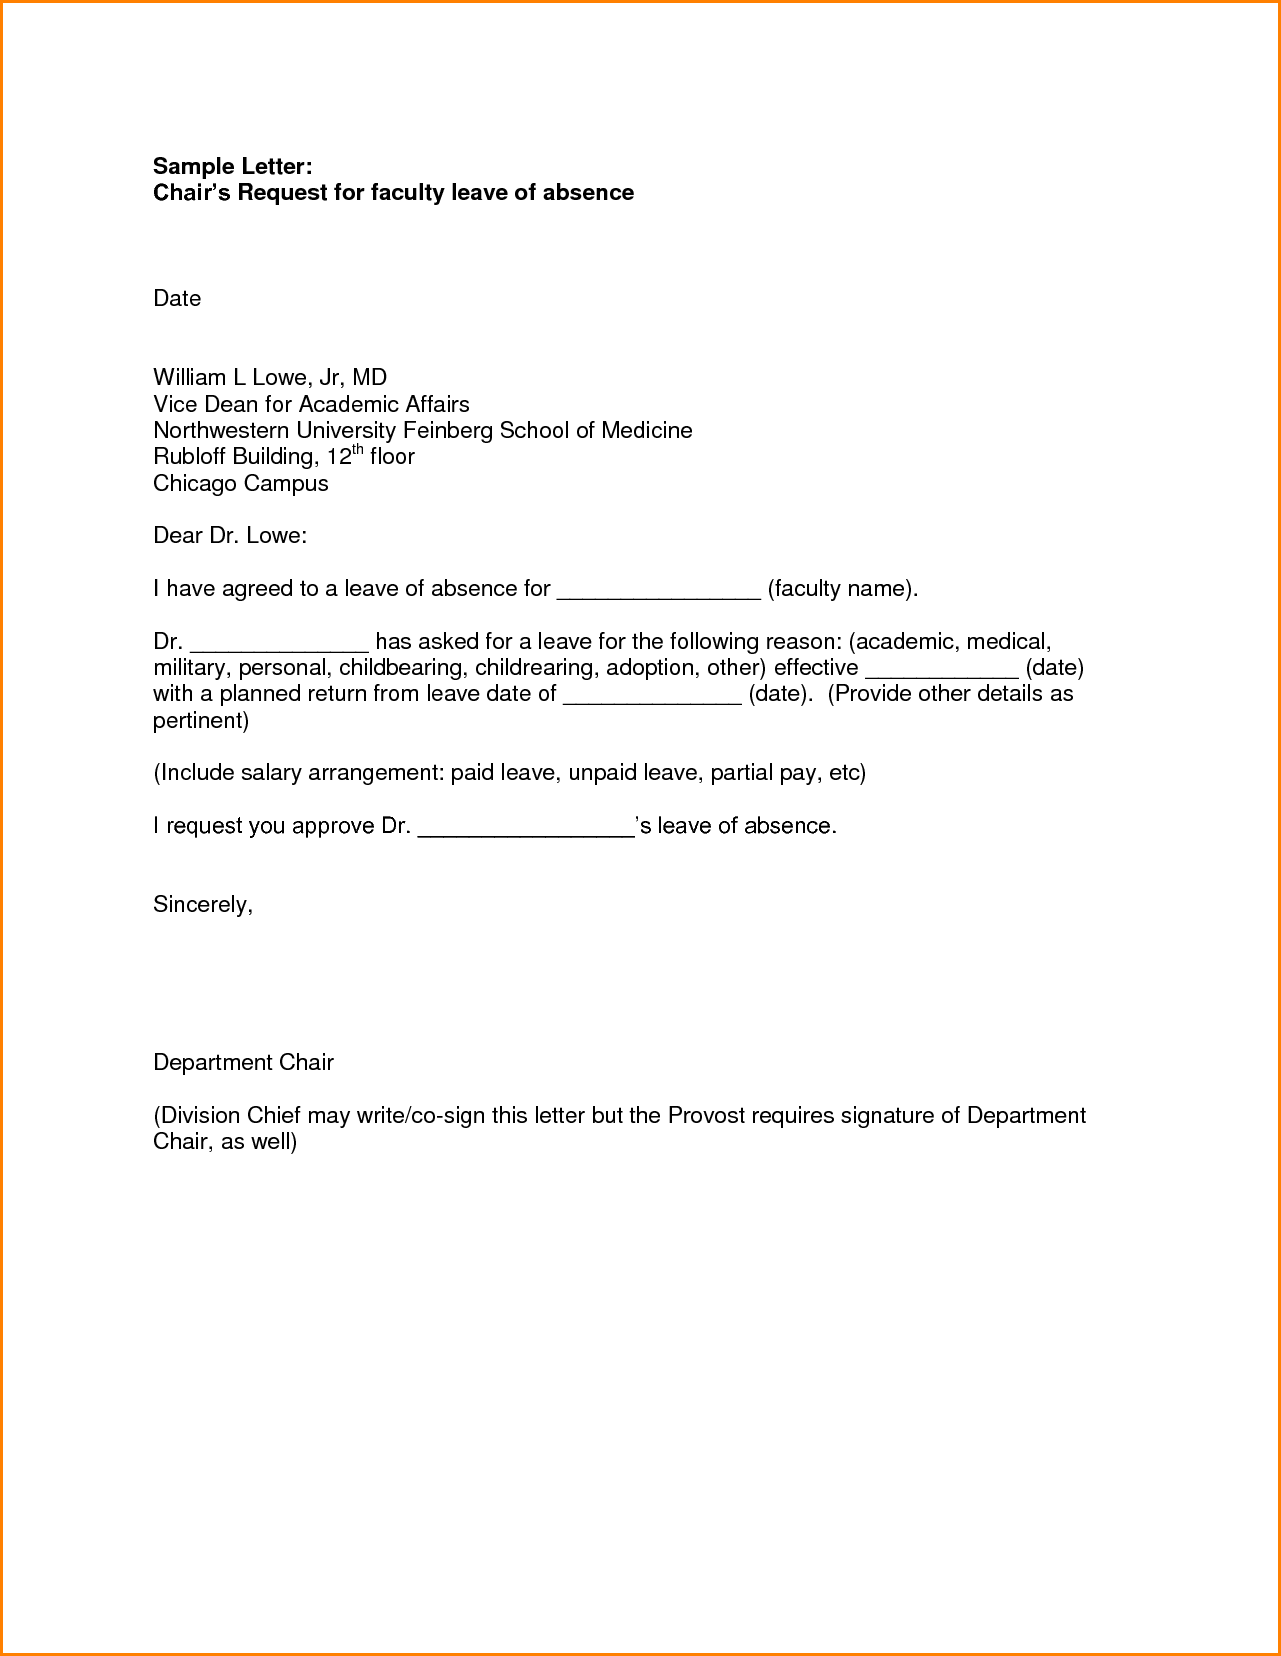 School leave letter format absence request sample medical school leave letter format absence request sample medical application for college illustrationessays web altavistaventures